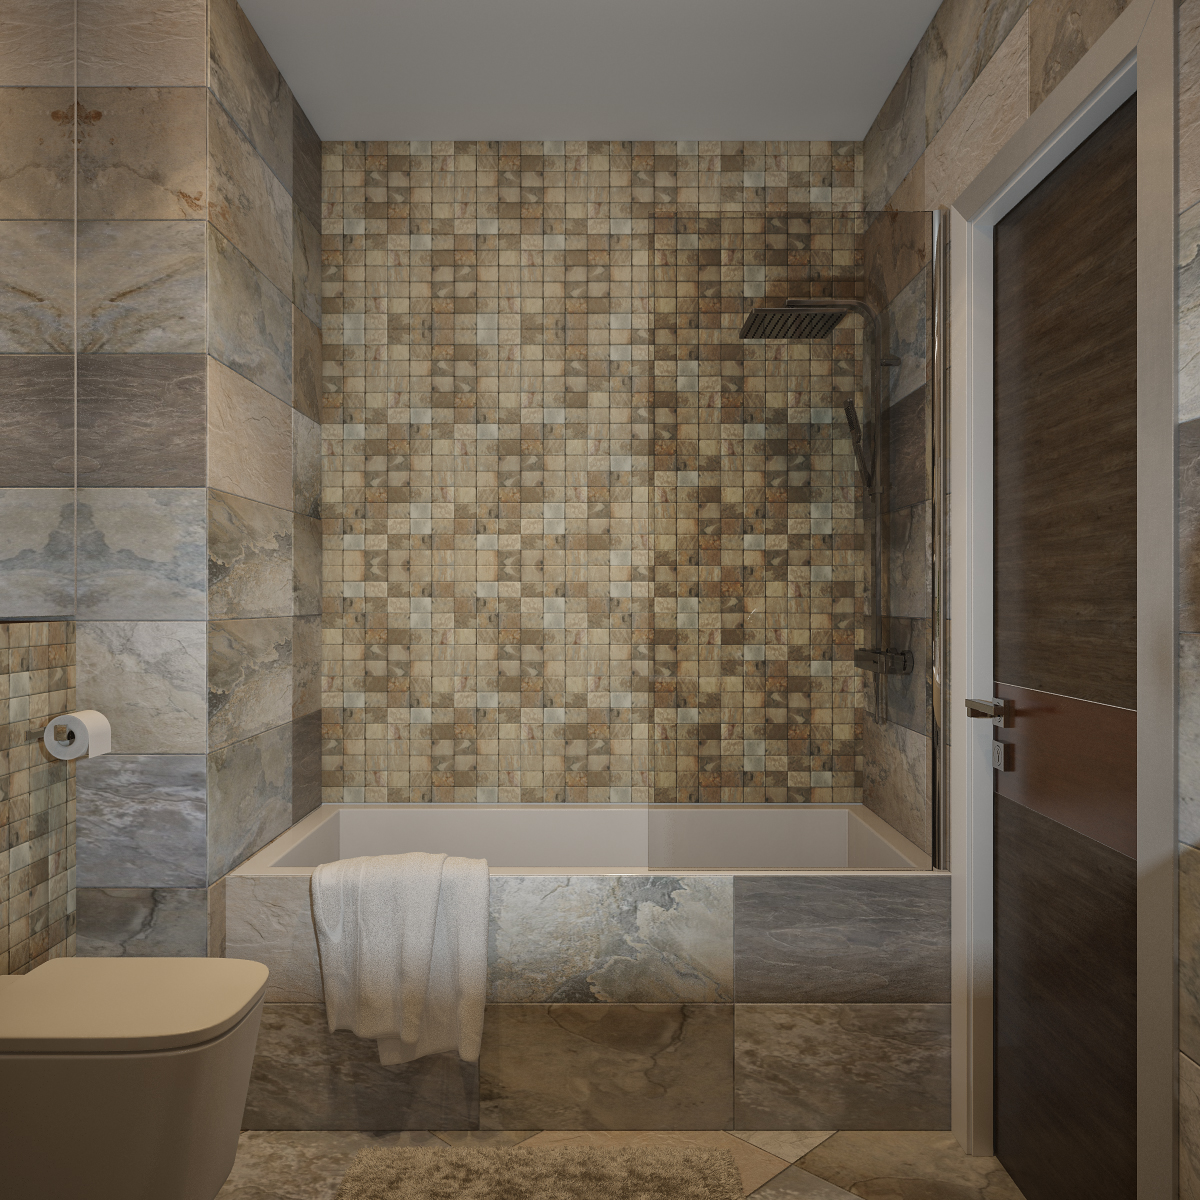 Beautify your bathroom with mosaics for Bathroom mosaic design